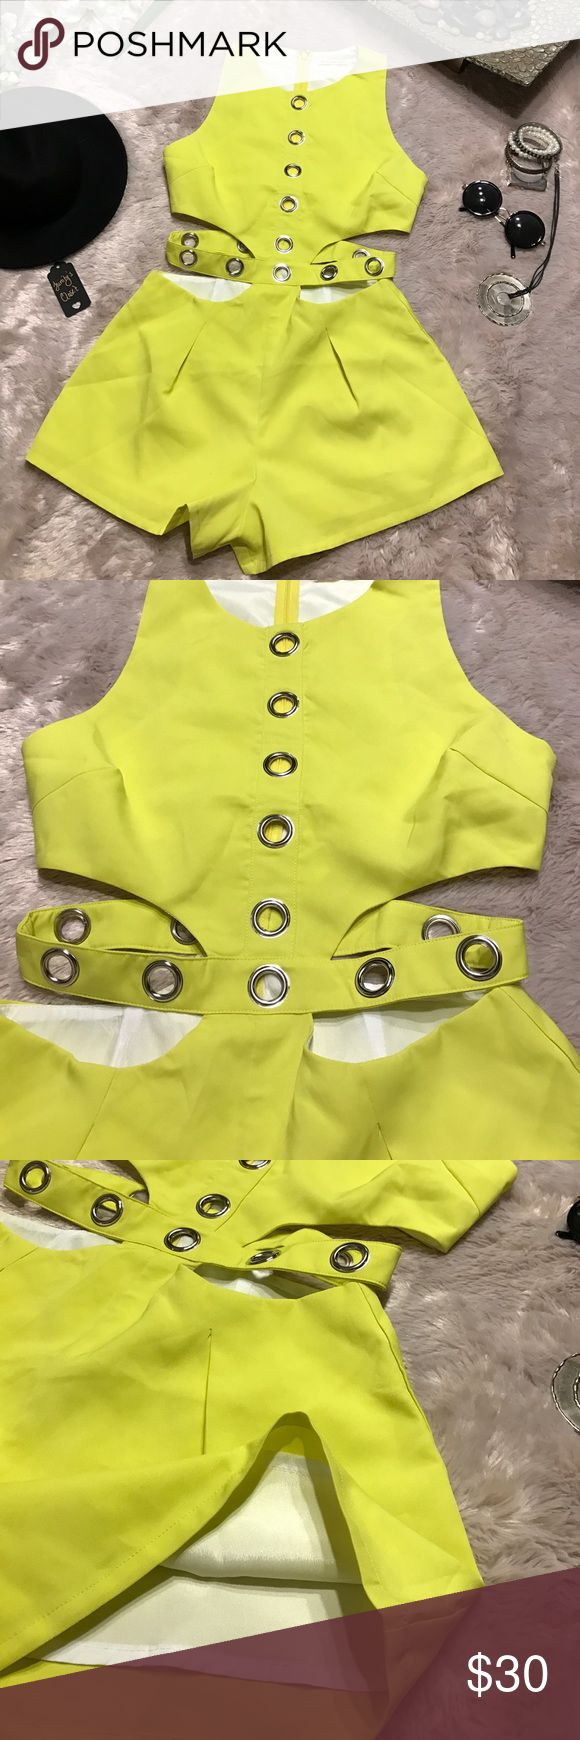 Flirty romper Neon yellow Mustard Seed romper with cutout details Mustard Seed Shorts